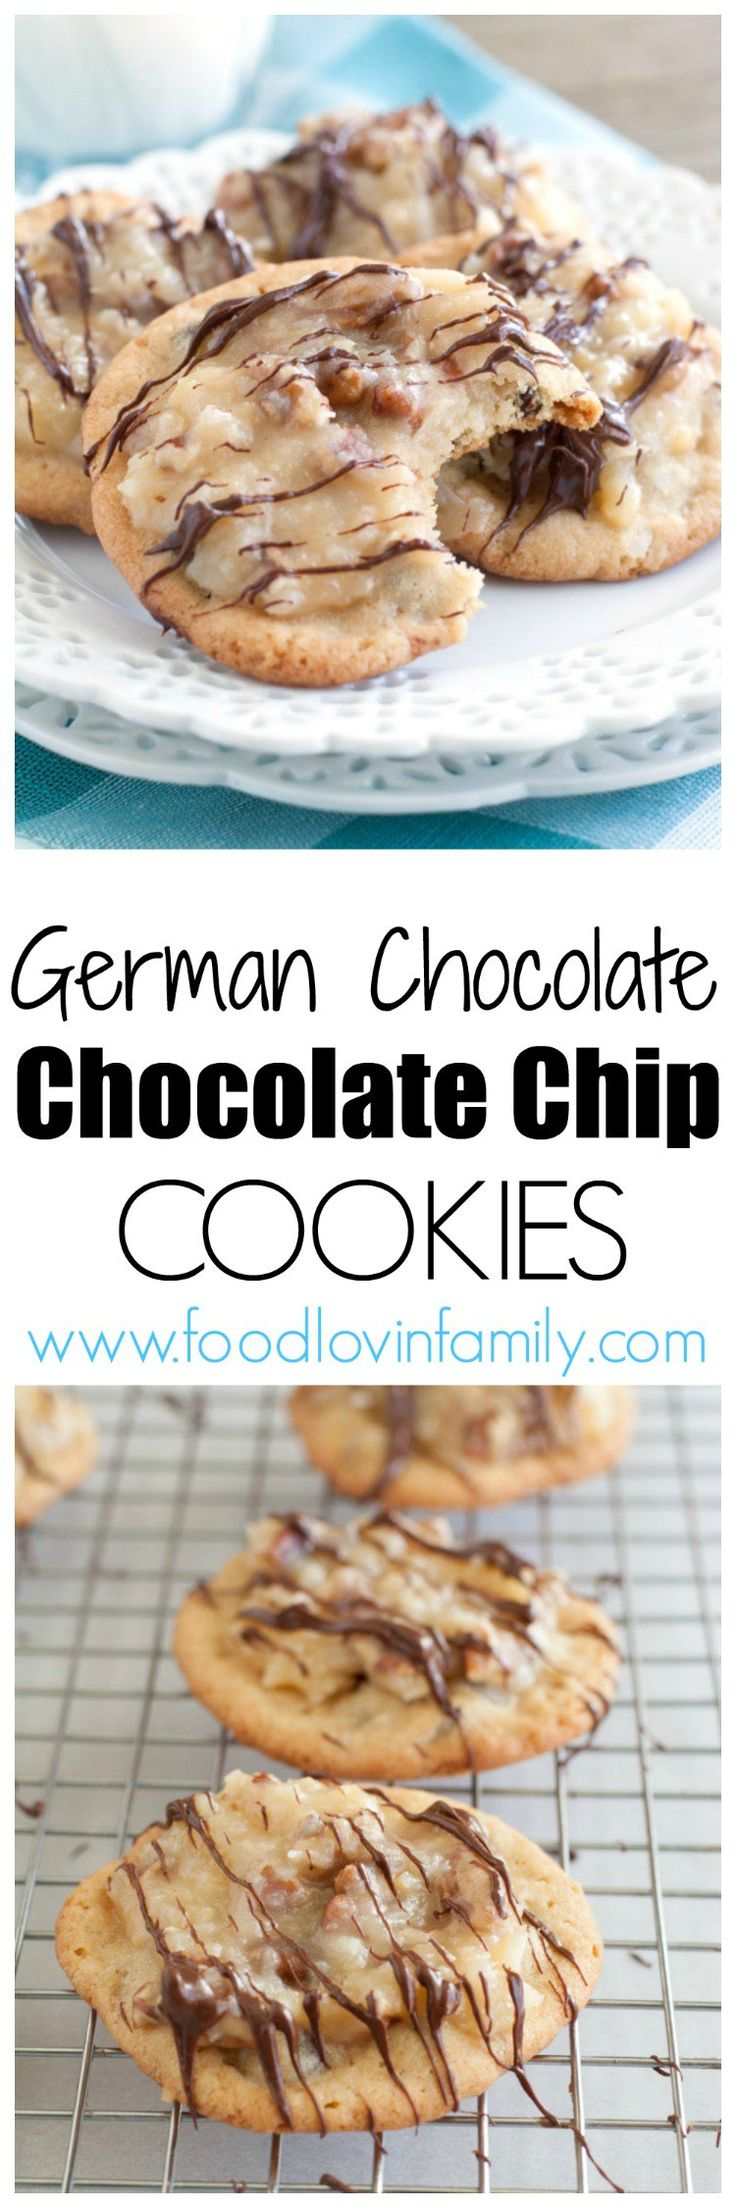 German Chocolate Chocolate Chip Cookies - Chewy chocolate chip cookies topped with an incredible pecan-coconut frosting will remind you of German Chocolate cake.